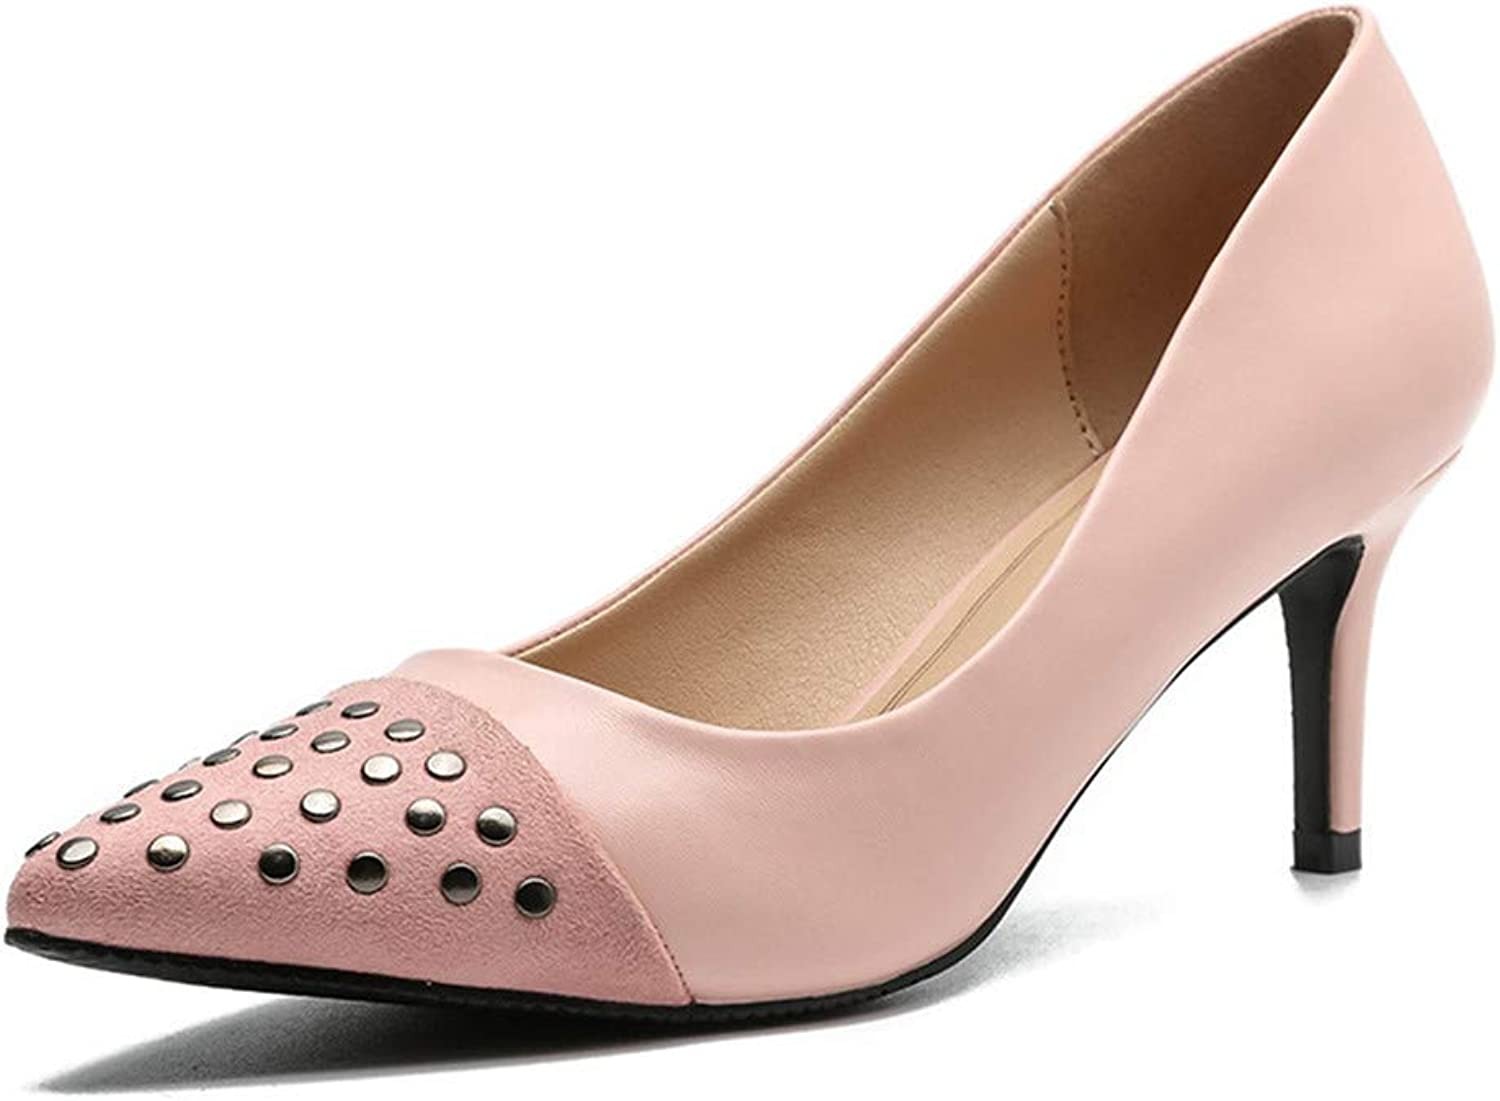 Meiren Pumps Autumn Studded Casual shoes Pointed Stiletto Shallow Heels Pink